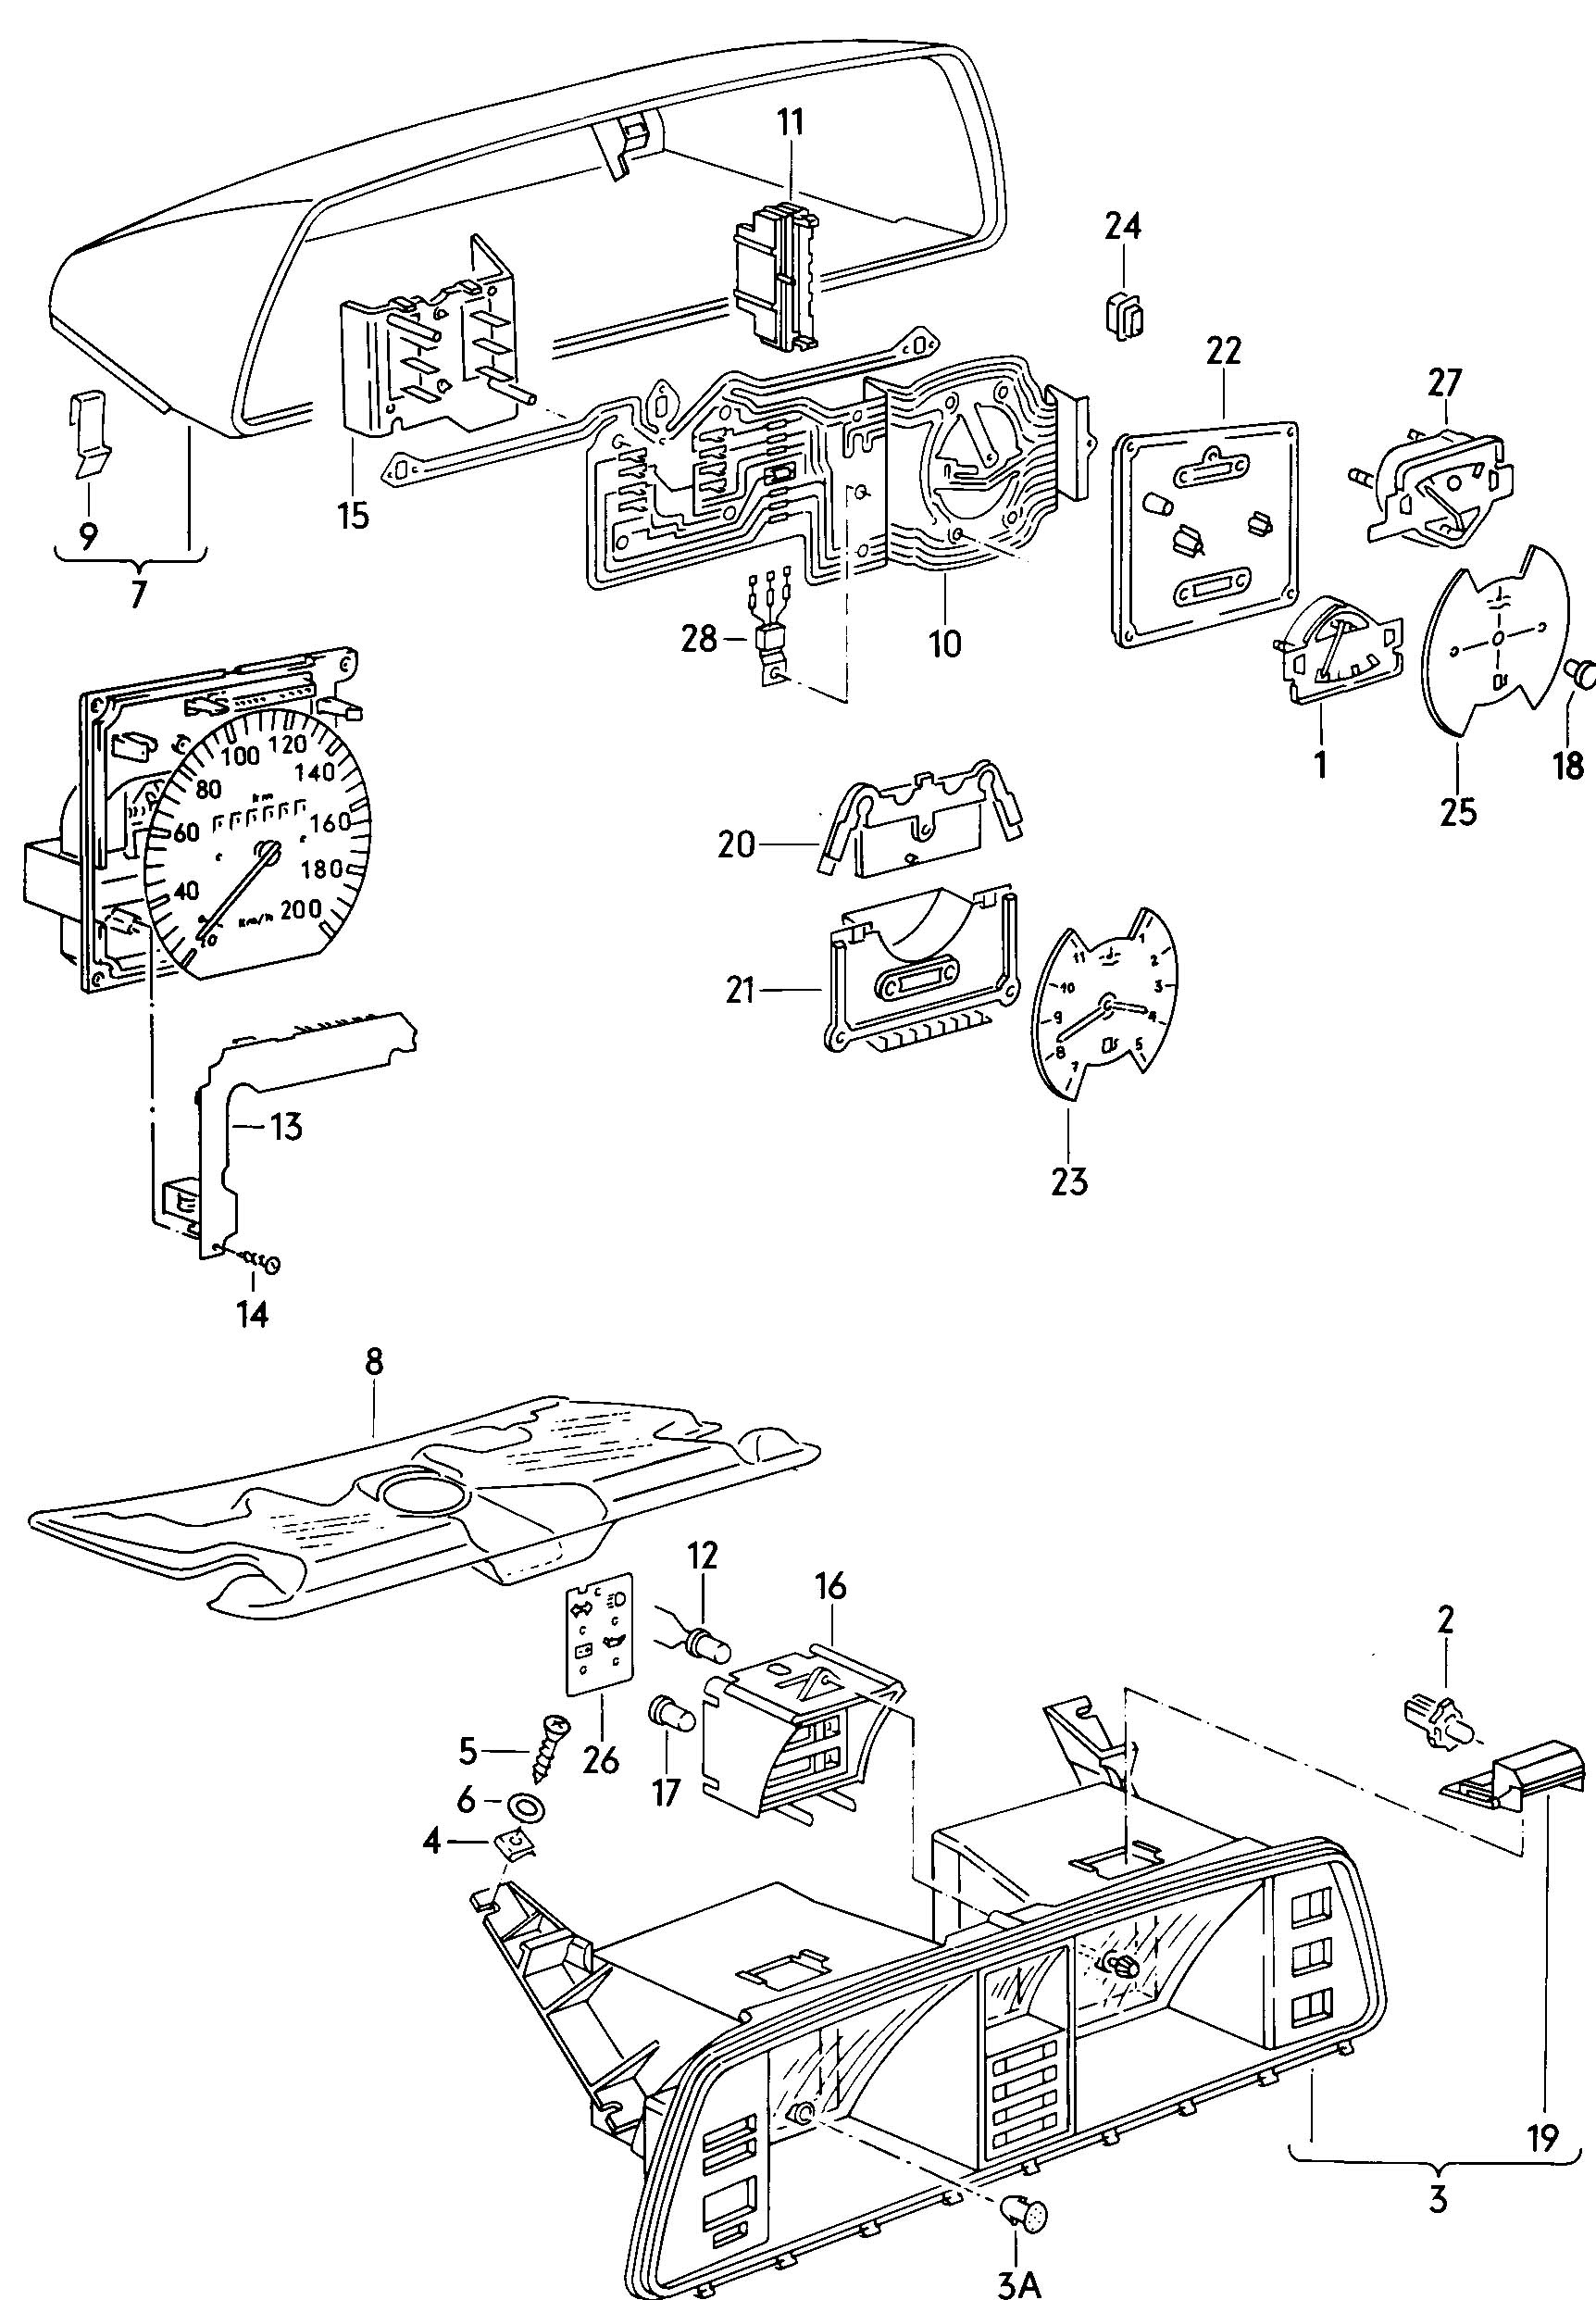 1980 vw vanagon engine diagram